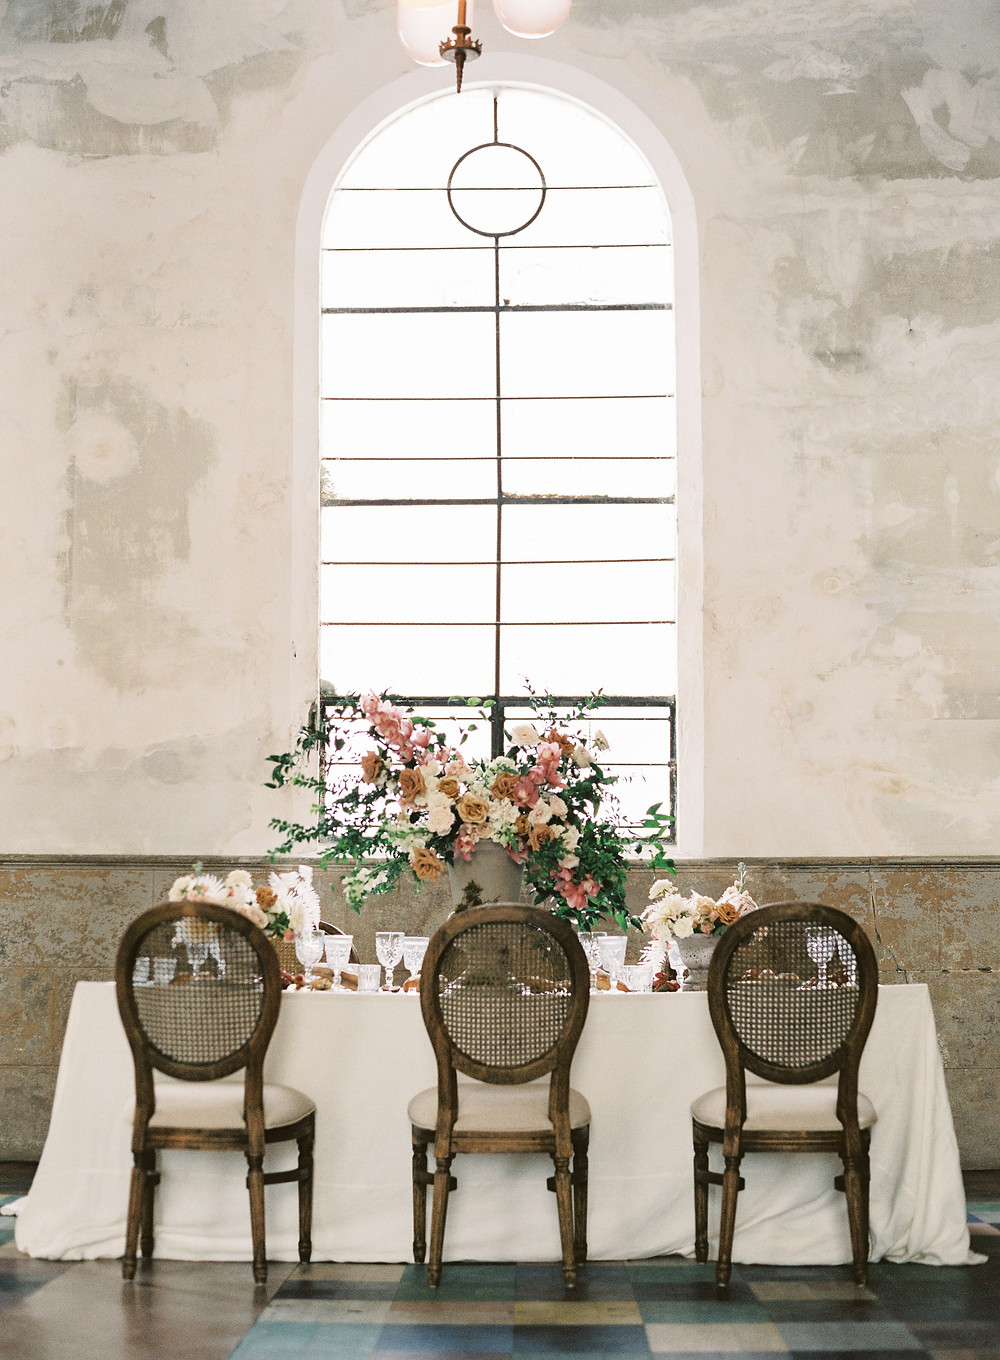 Leaf + petal, New Orleans, Marigny opera house, seated dinner, intimate wedding, cane back chairs, garden urns, Bridgerton wedding